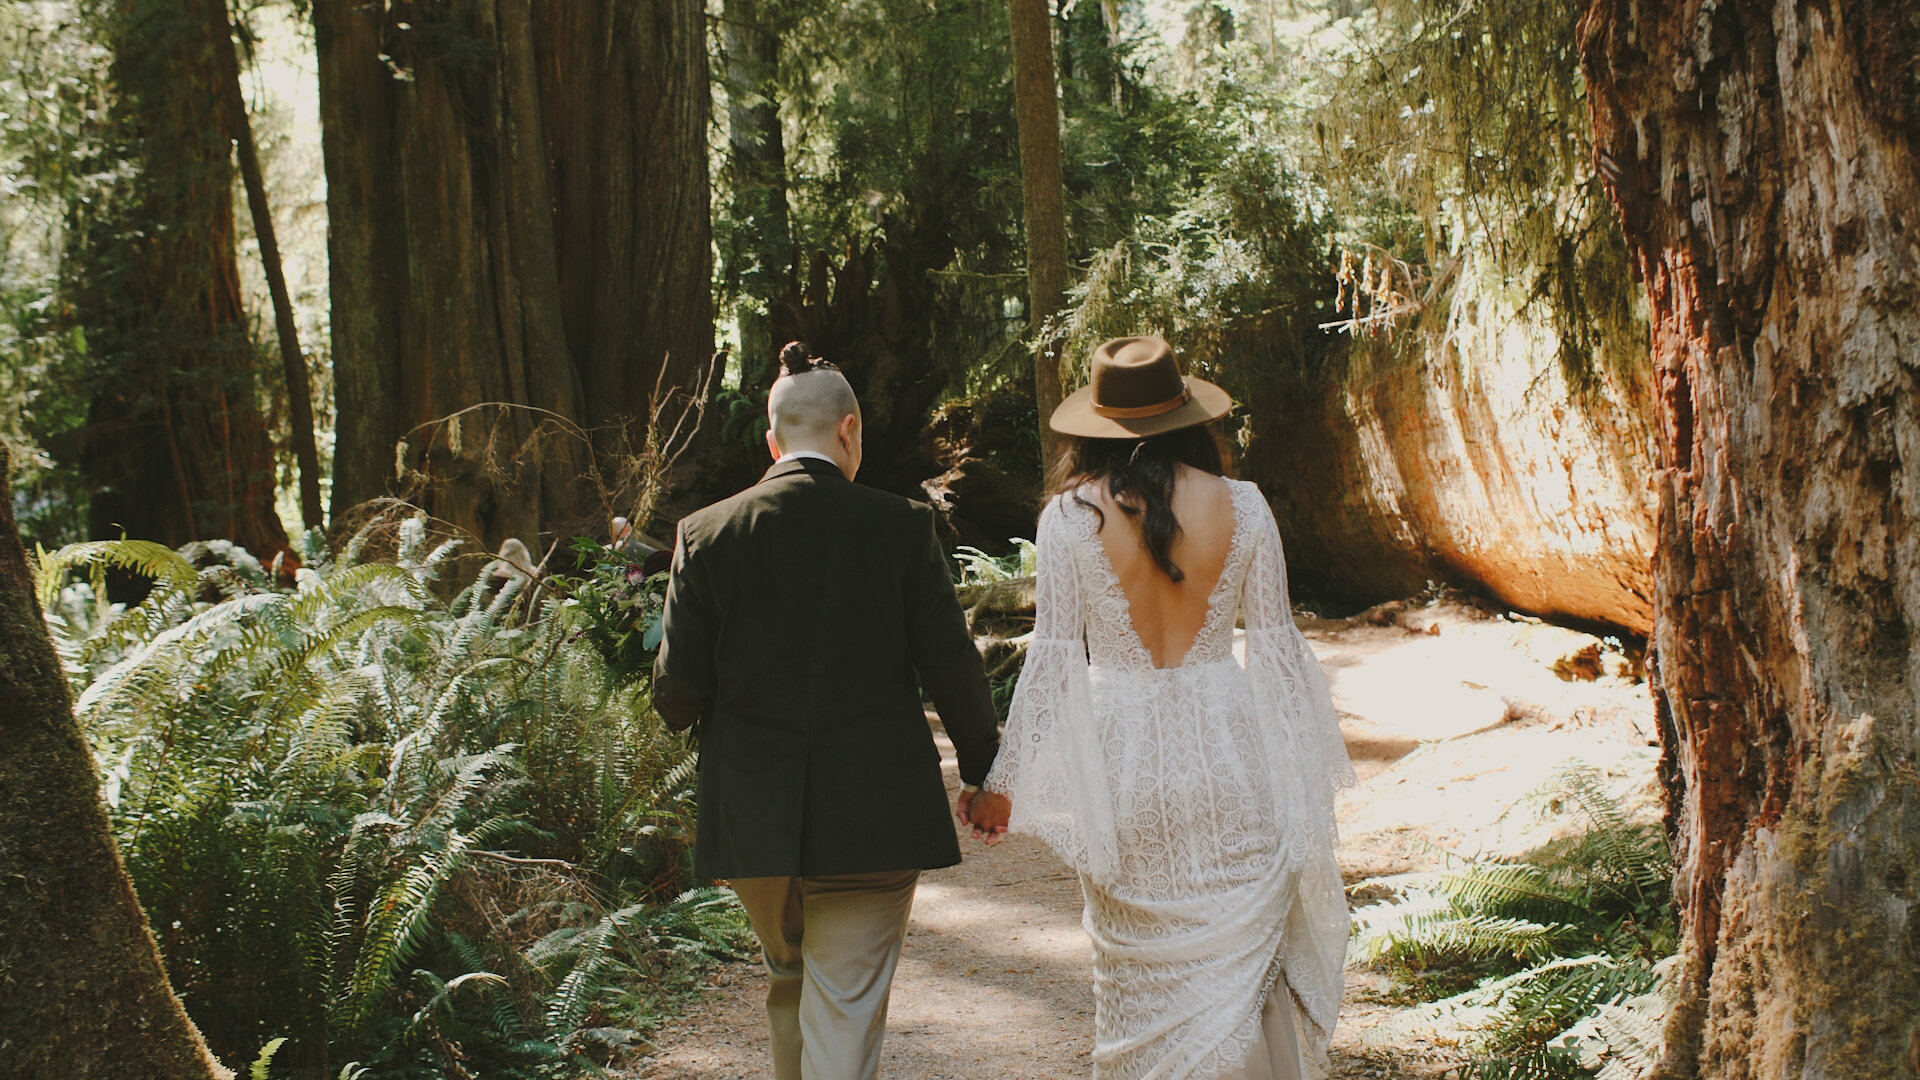 Couple walking through the redwoods after their wedding under the trees. They are holding hands and facing away from the camera.